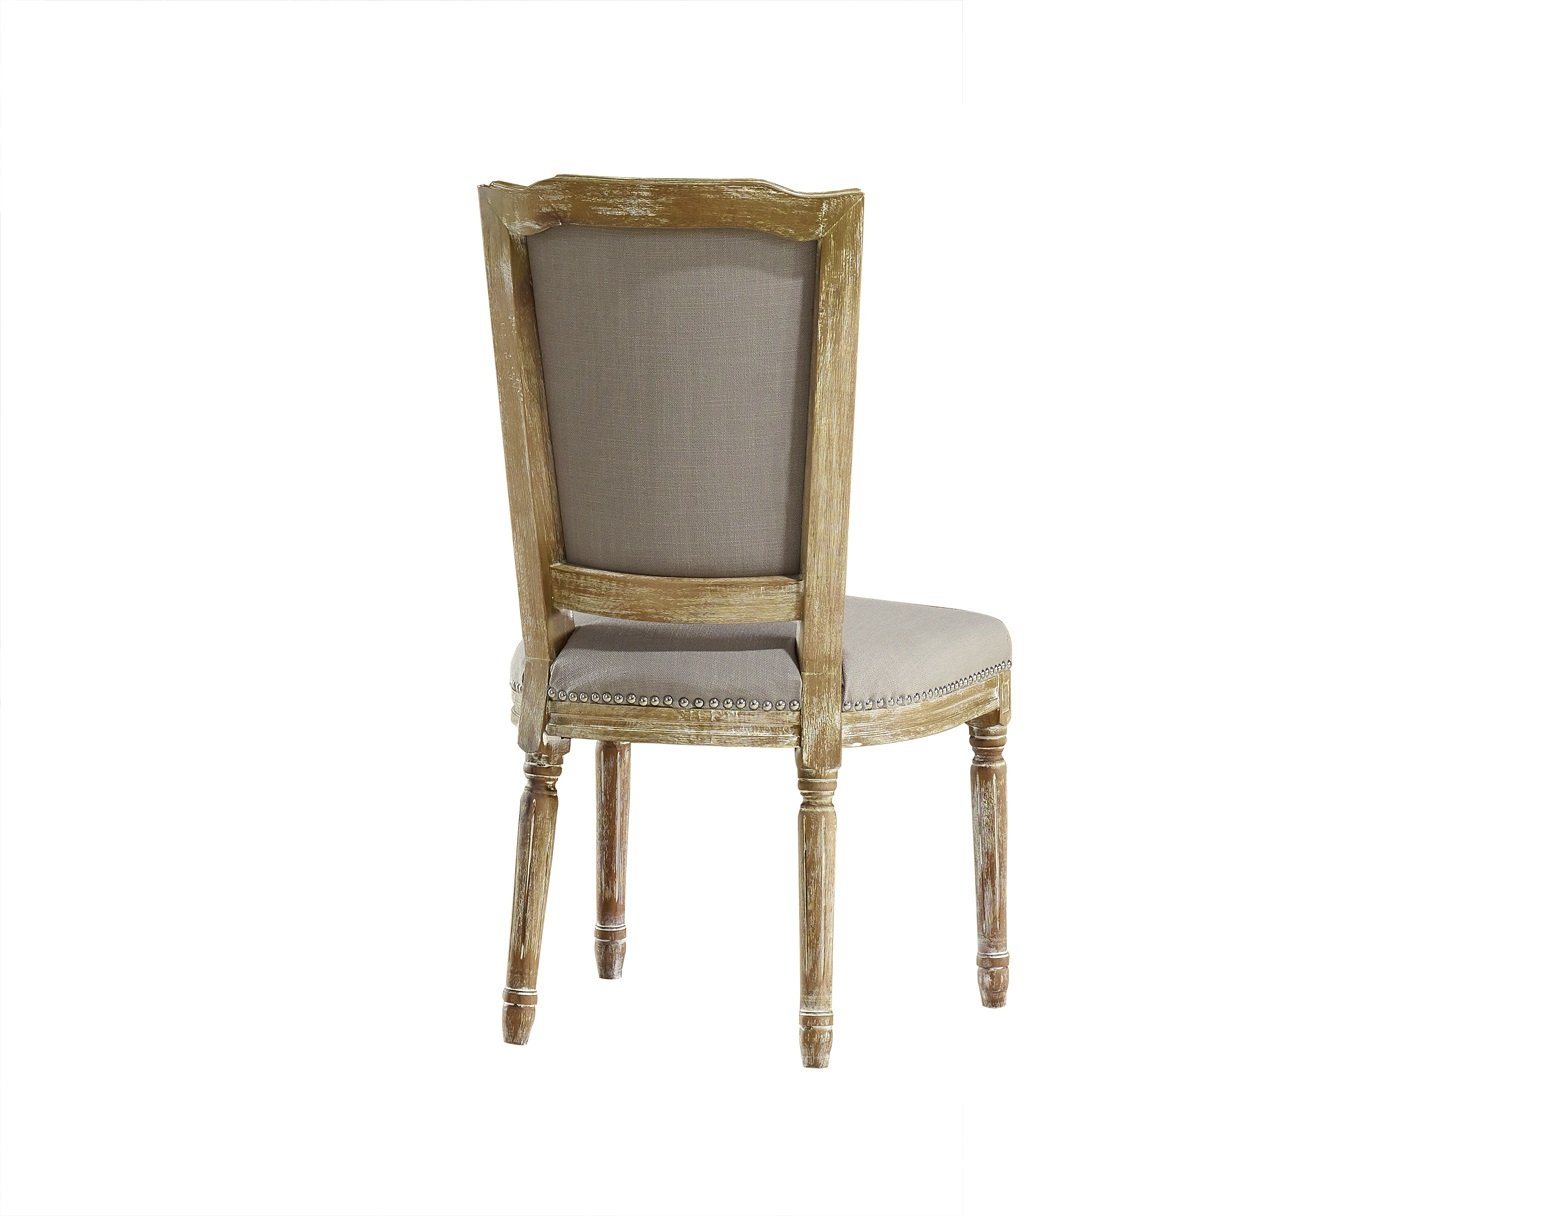 Baxton Studio Estelle Shabby Chic Rustic French Country Cottage Weathered Oak Linen Button Tufted Upholstered Dining Chair, Medium, Beige - Gorgeous French Provincial Style Aesthetic Improves with Age Stunning Solid Oak with White Wash Effect - kitchen-dining-room-furniture, kitchen-dining-room, kitchen-dining-room-chairs - 61fssNGNRiL -